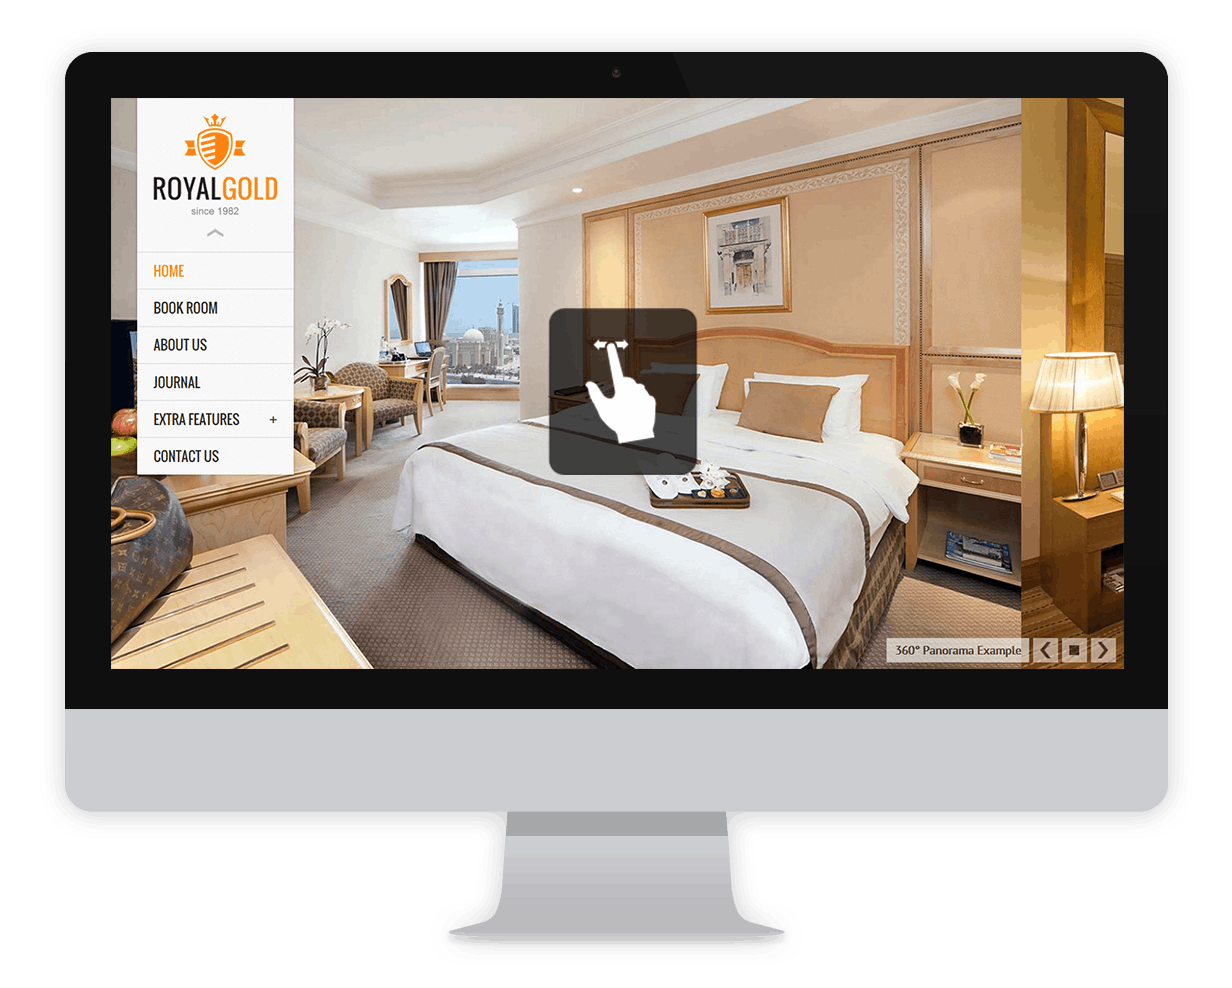 royalgold2 - RoyalGold - A Luxury & Responsive Hotel or Resort Theme For WordPress